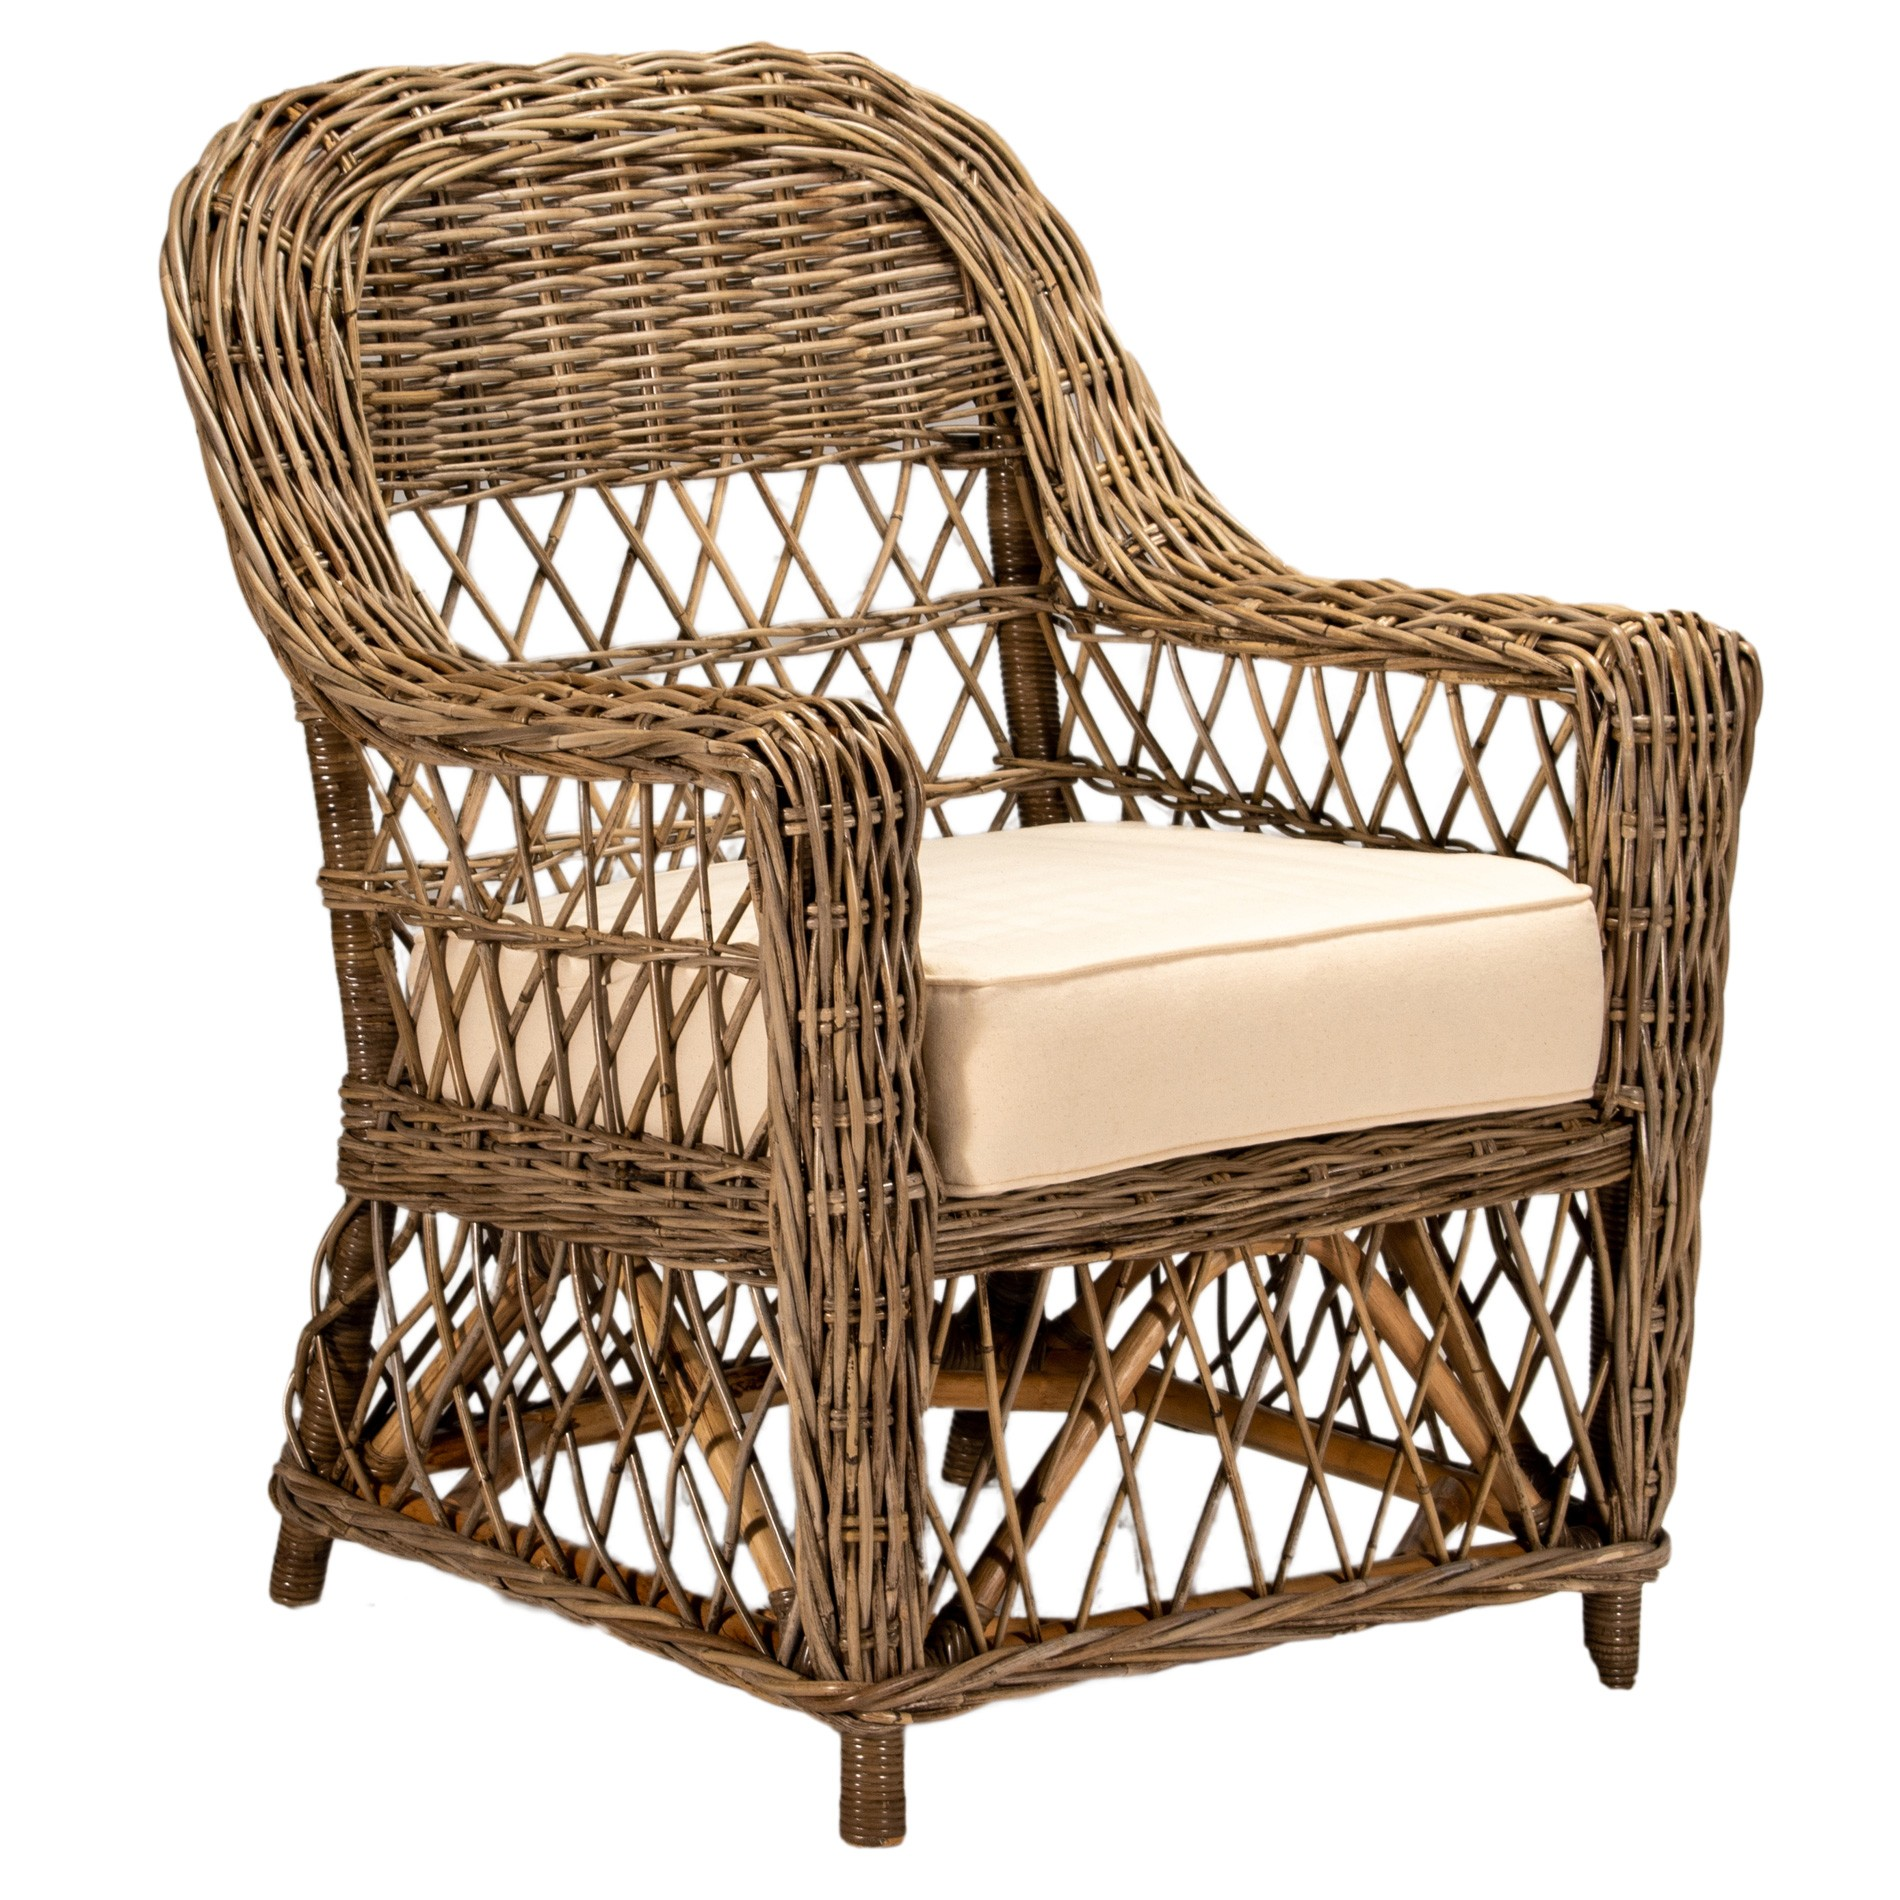 Palmetto Rattan Armchair, Natural